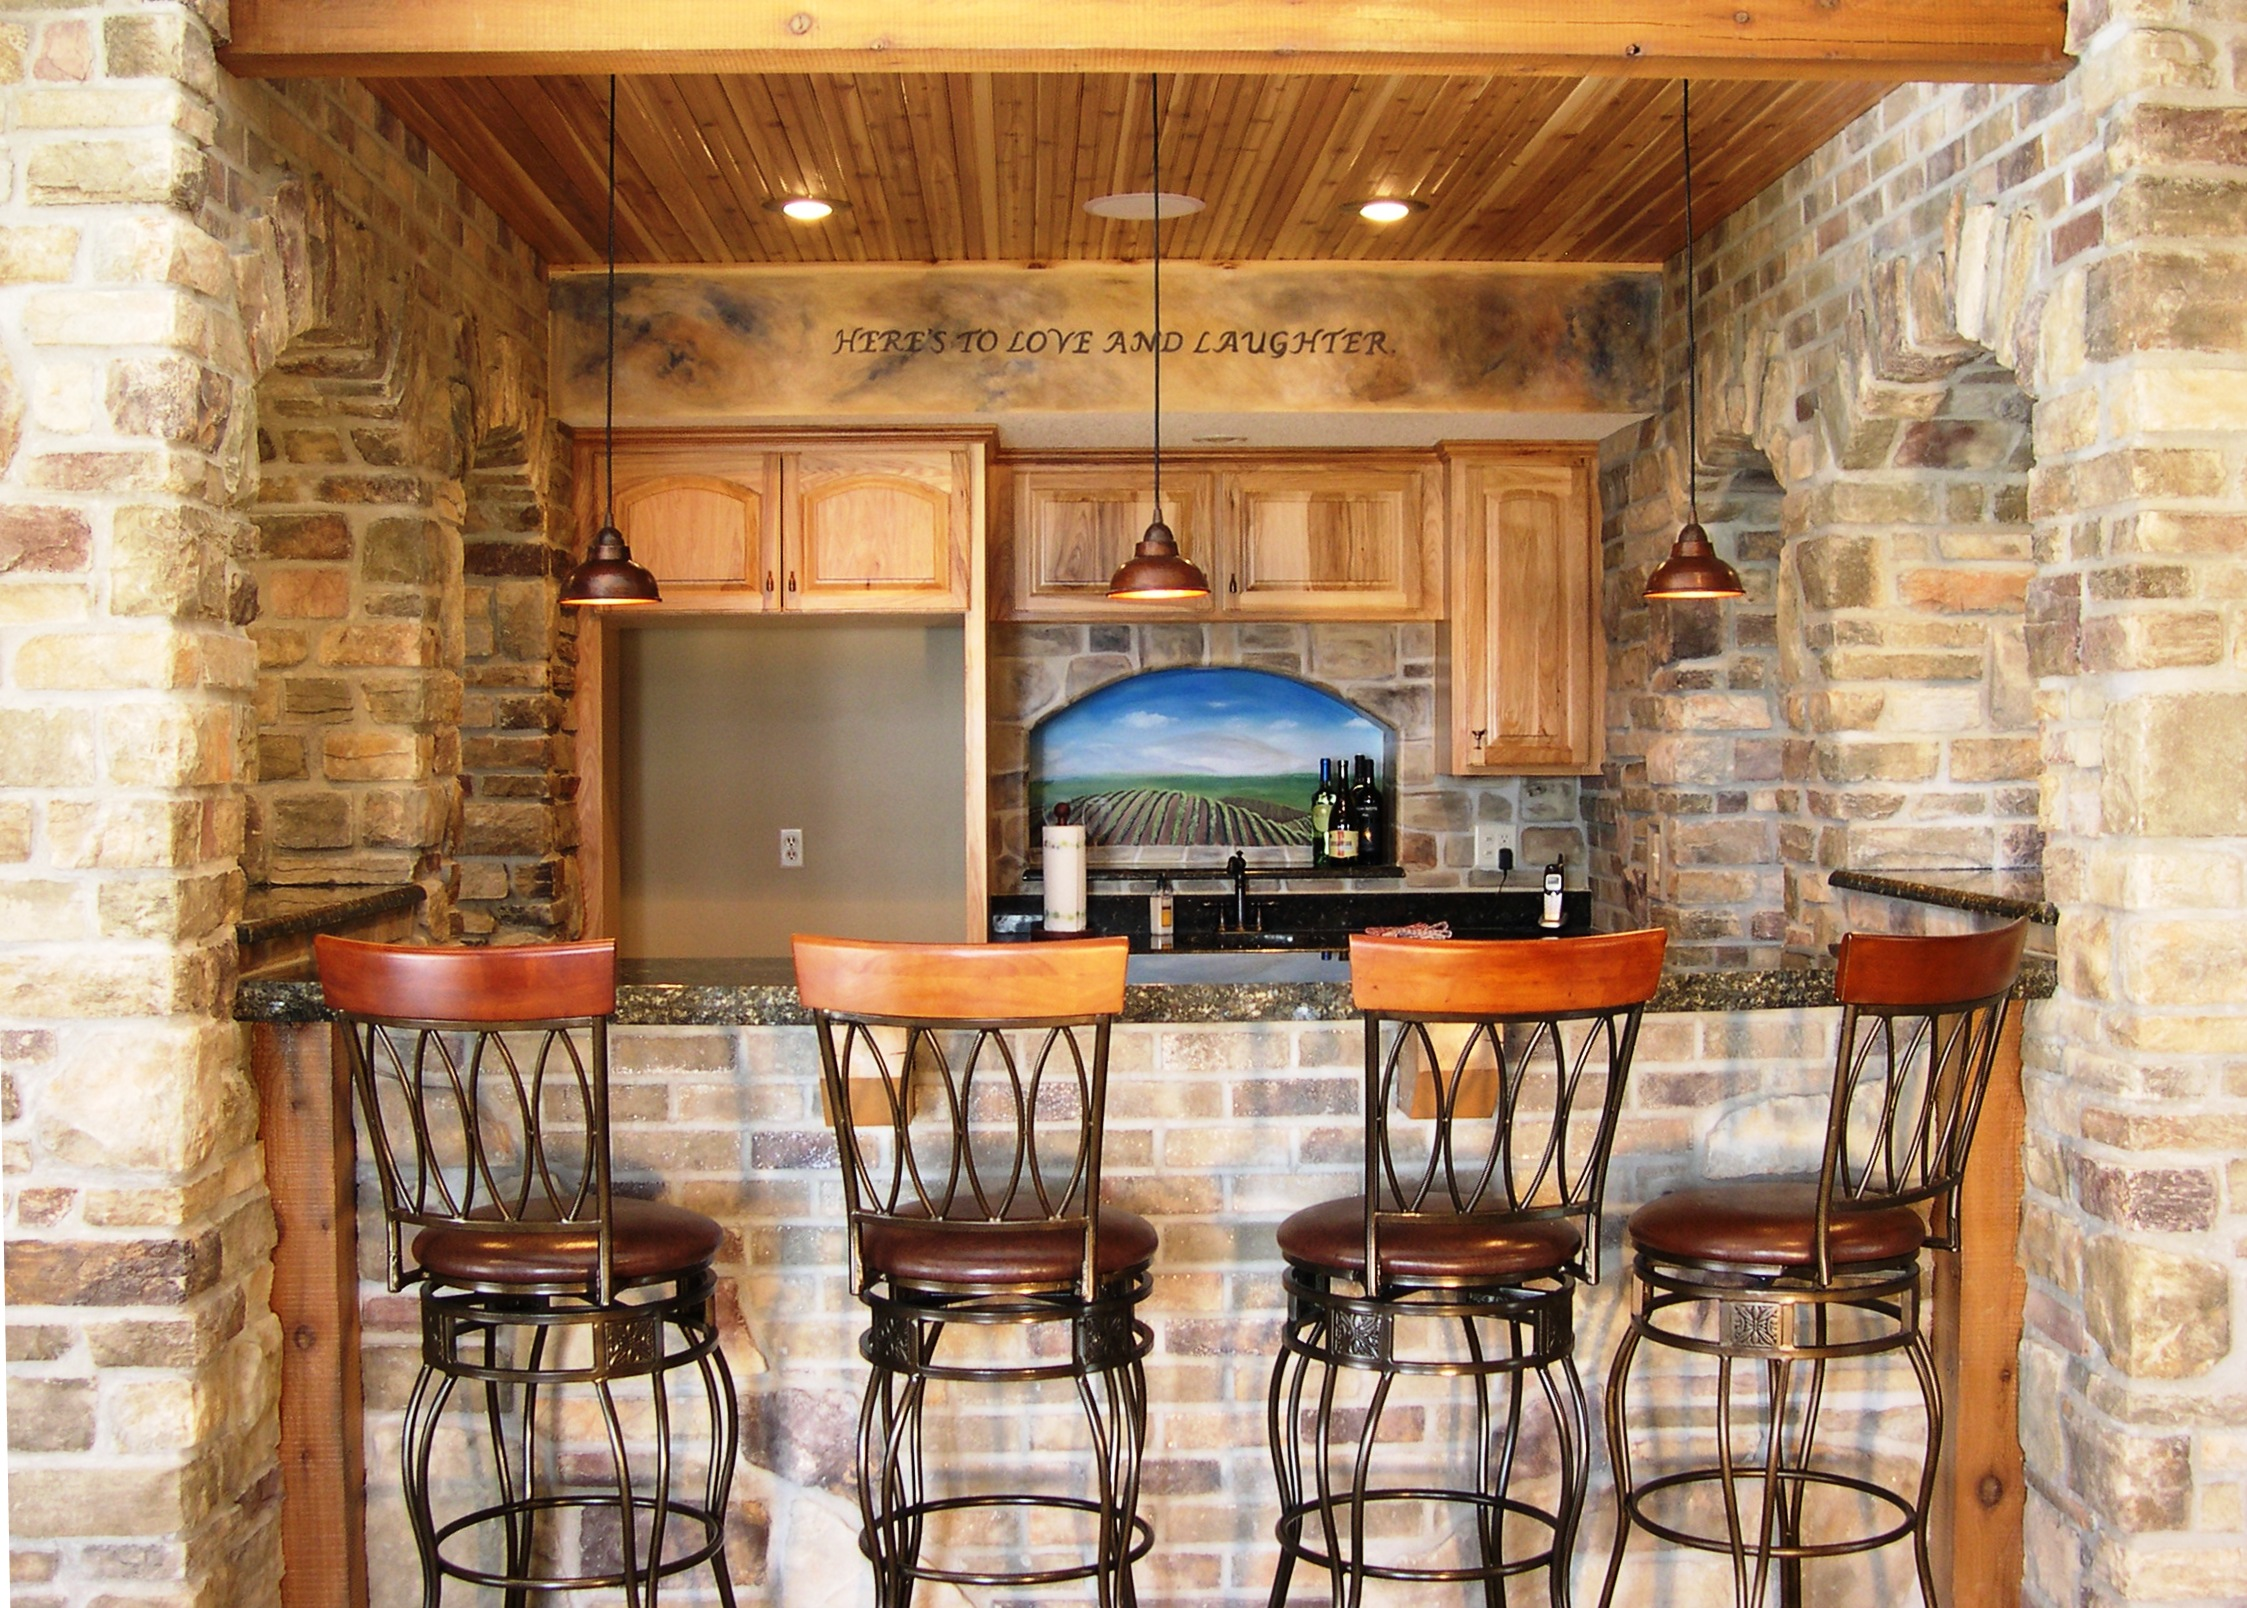 House plans and home designs free blog archive free for How to build a wet bar at home